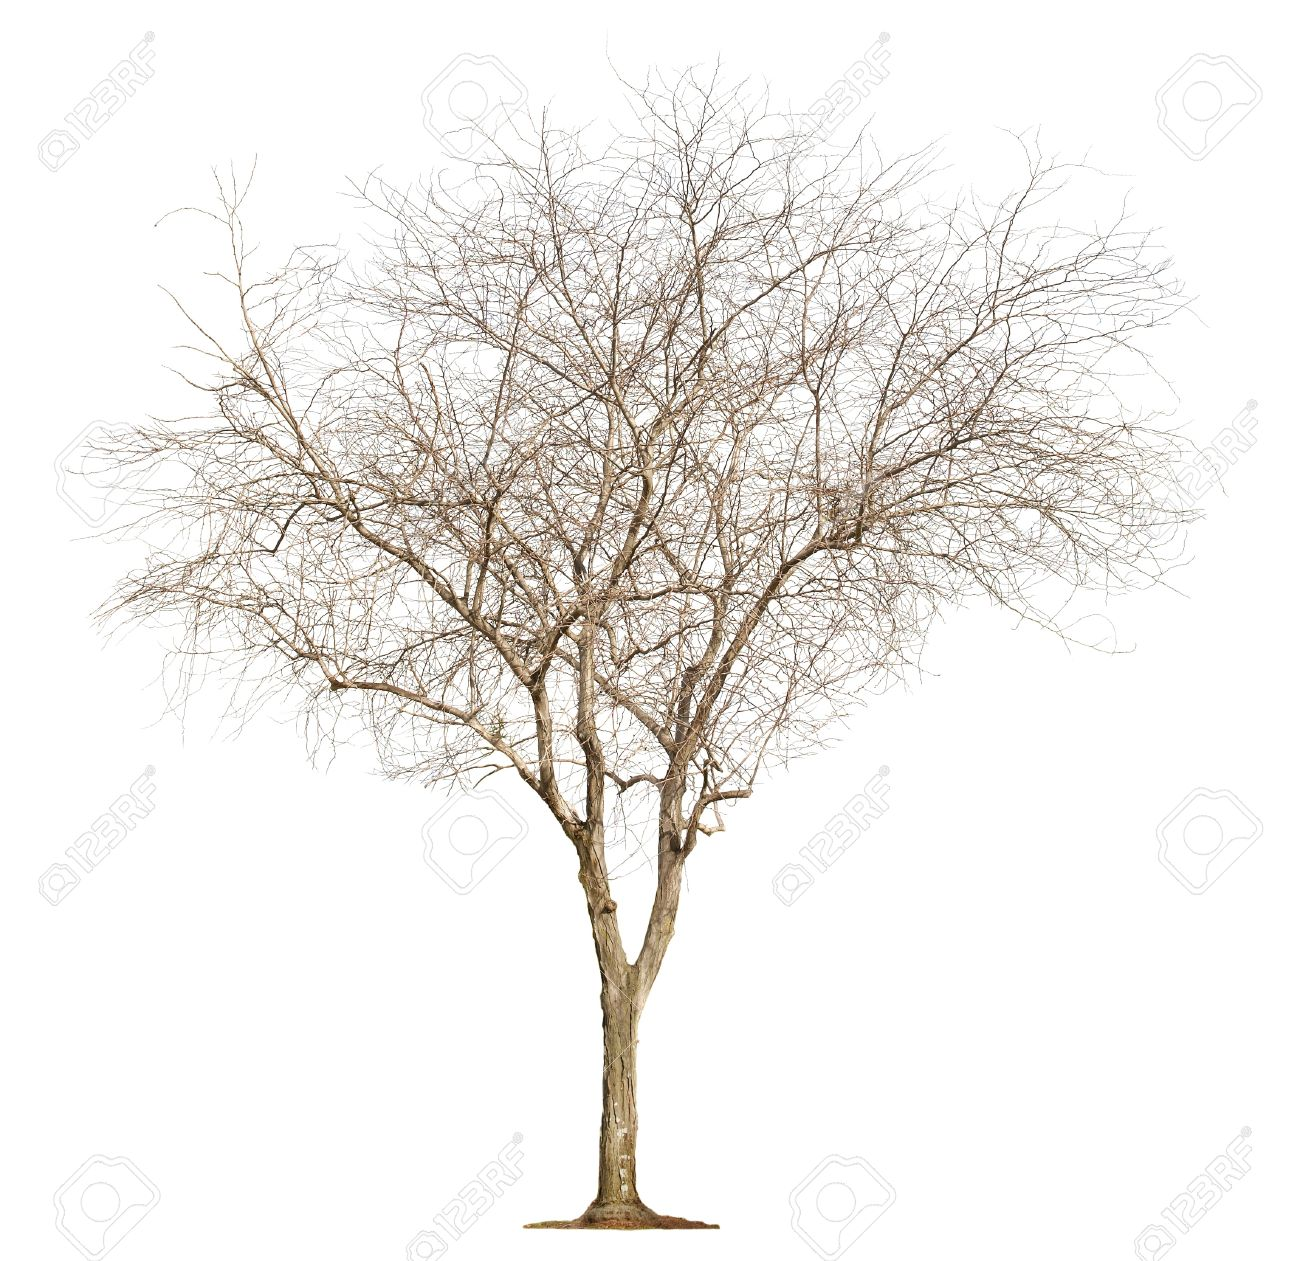 Single old and leafless tree isolated on white background Stock Photo - 18467496